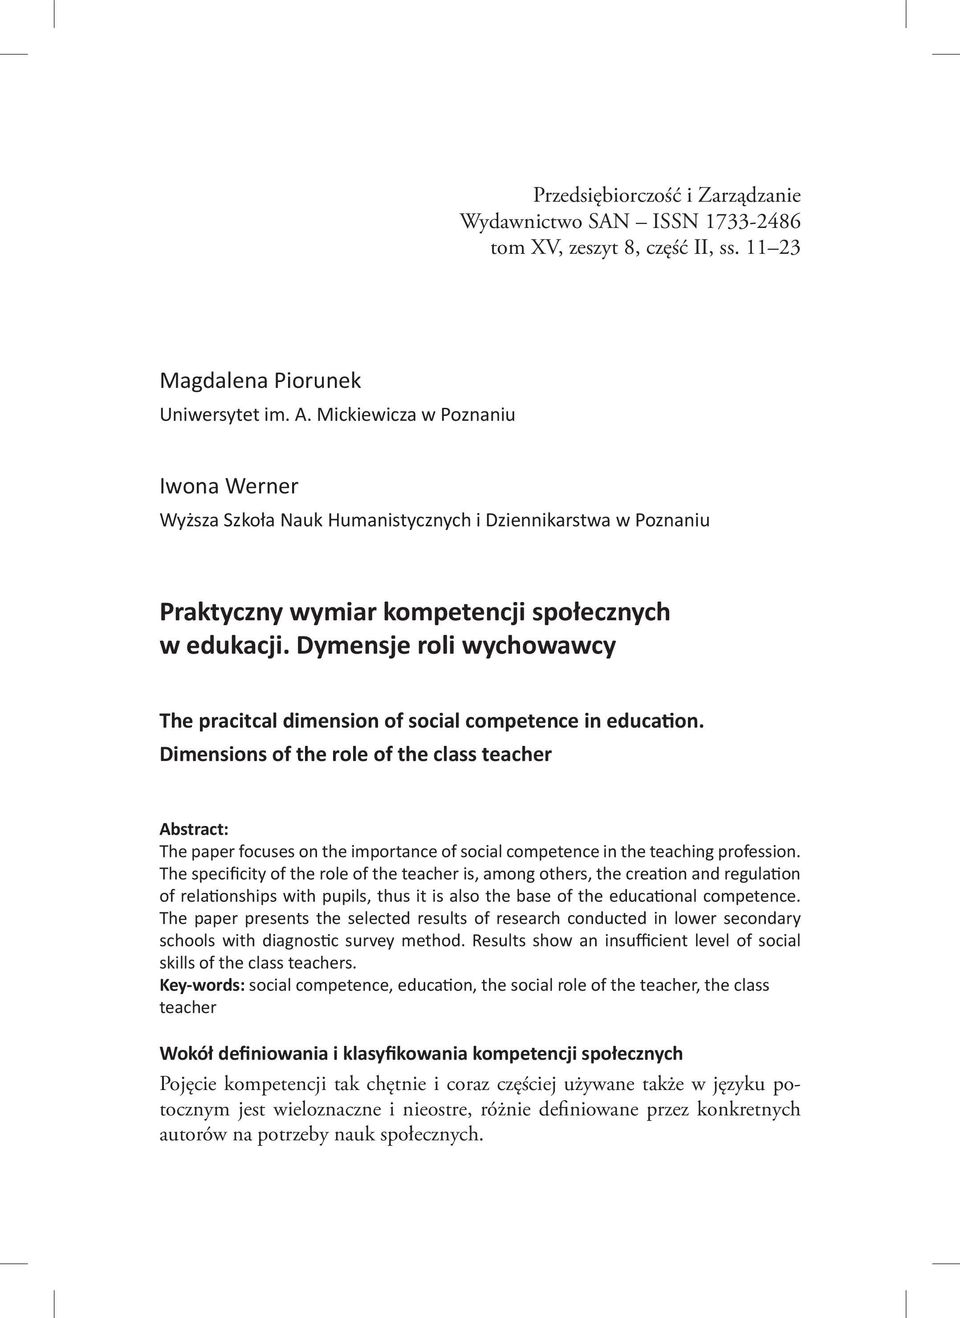 Dymensje roli wychowawcy The pracitcal dimension of social competence in education.